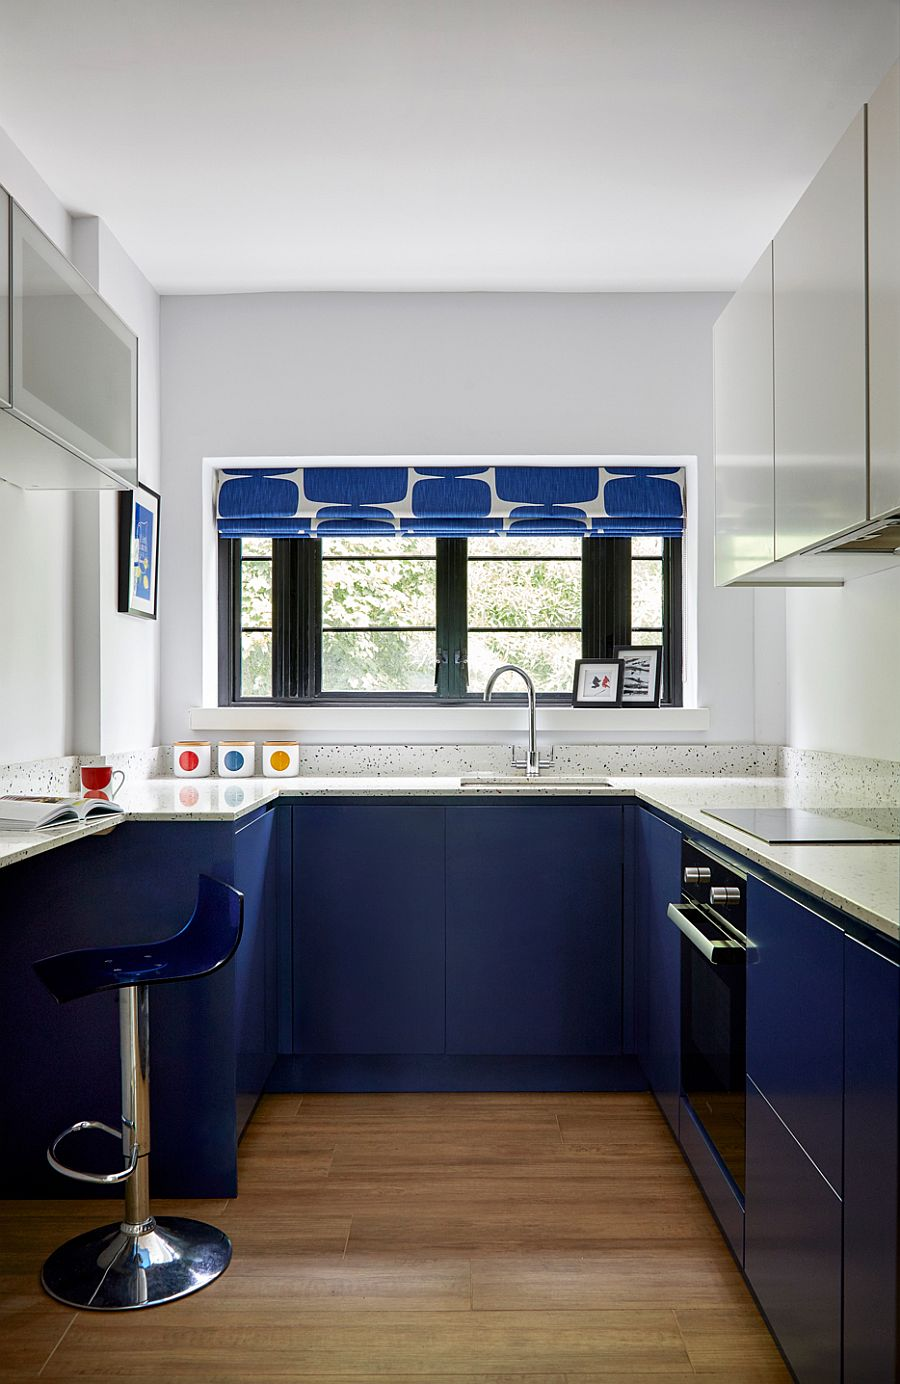 Polished contemporary kitchen in white and blue with blue cabinets below and white cabinets above